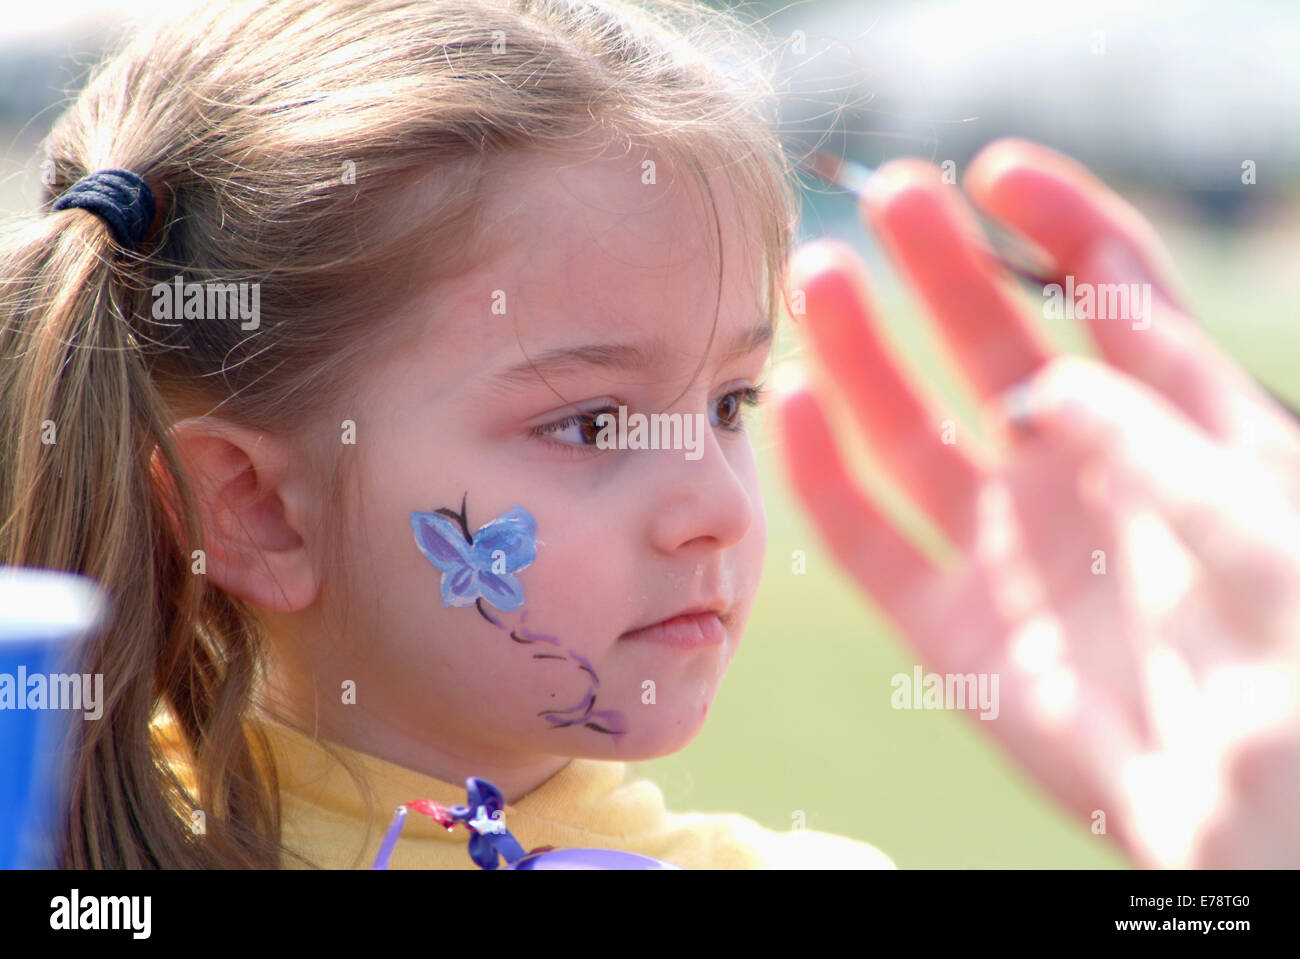 Child undergoing face painting - Stock Image